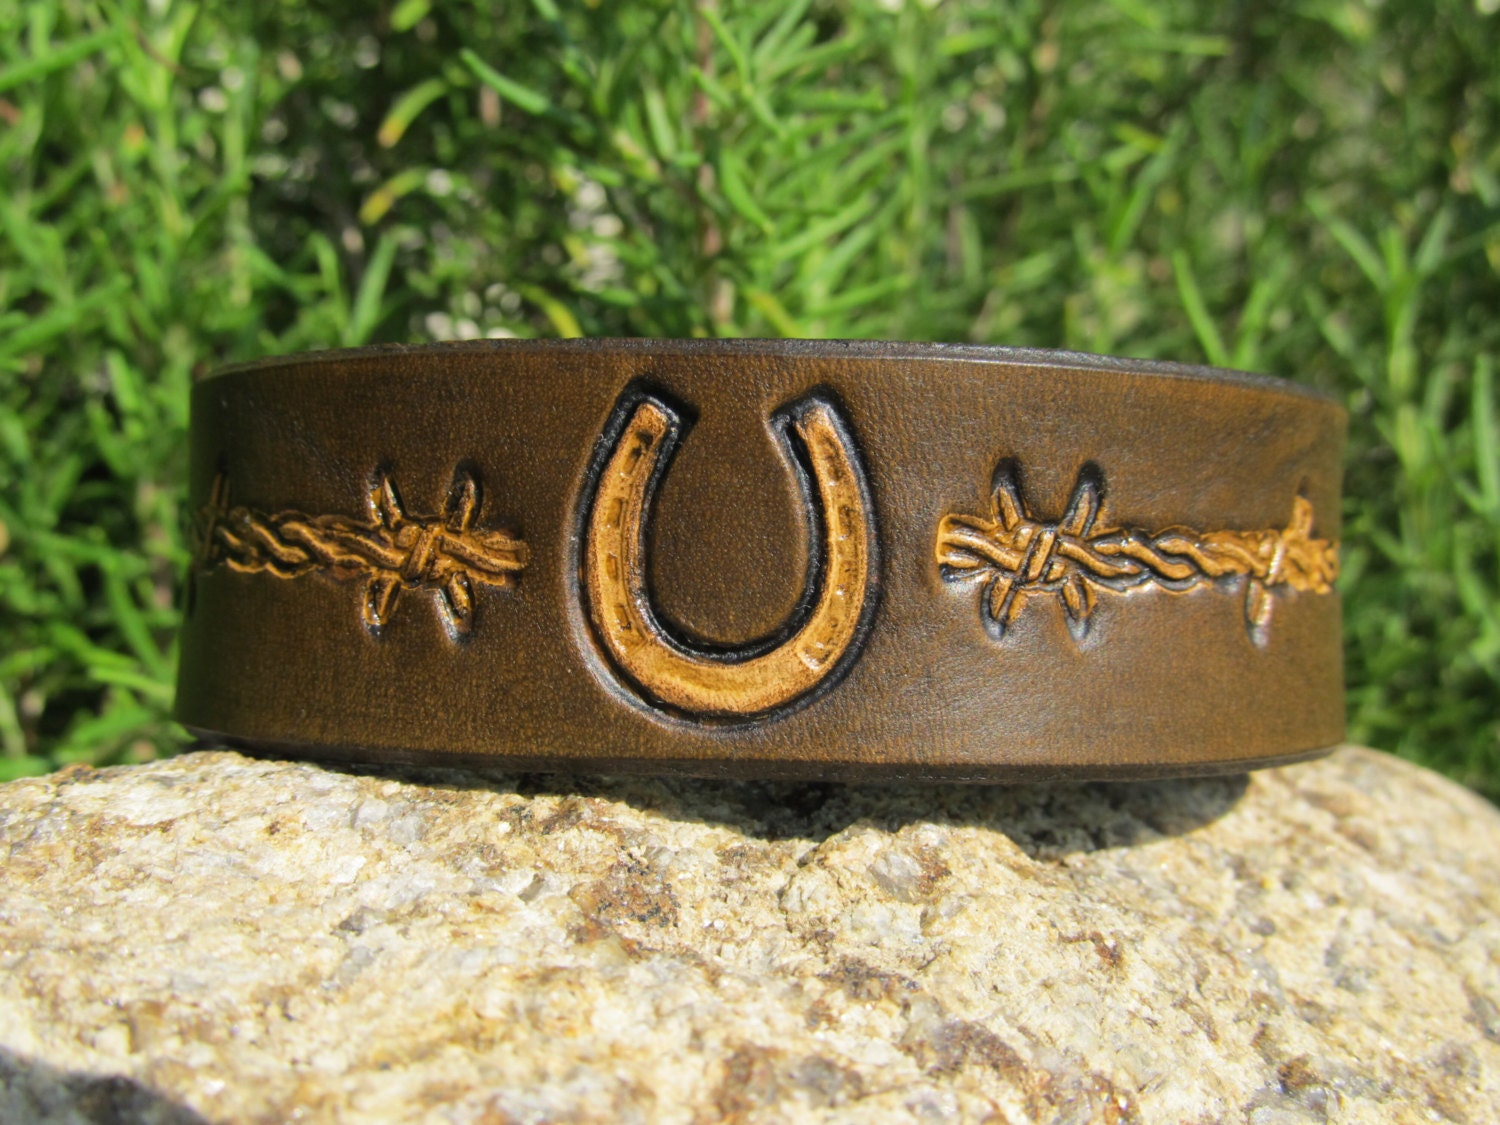 Hand Painted Tooled Leather Cuff Bracelet - 1 inch wide - Horse Shoe and Barbed Wire - Men Women Boy Girl Kids Children - SarahsArtistry